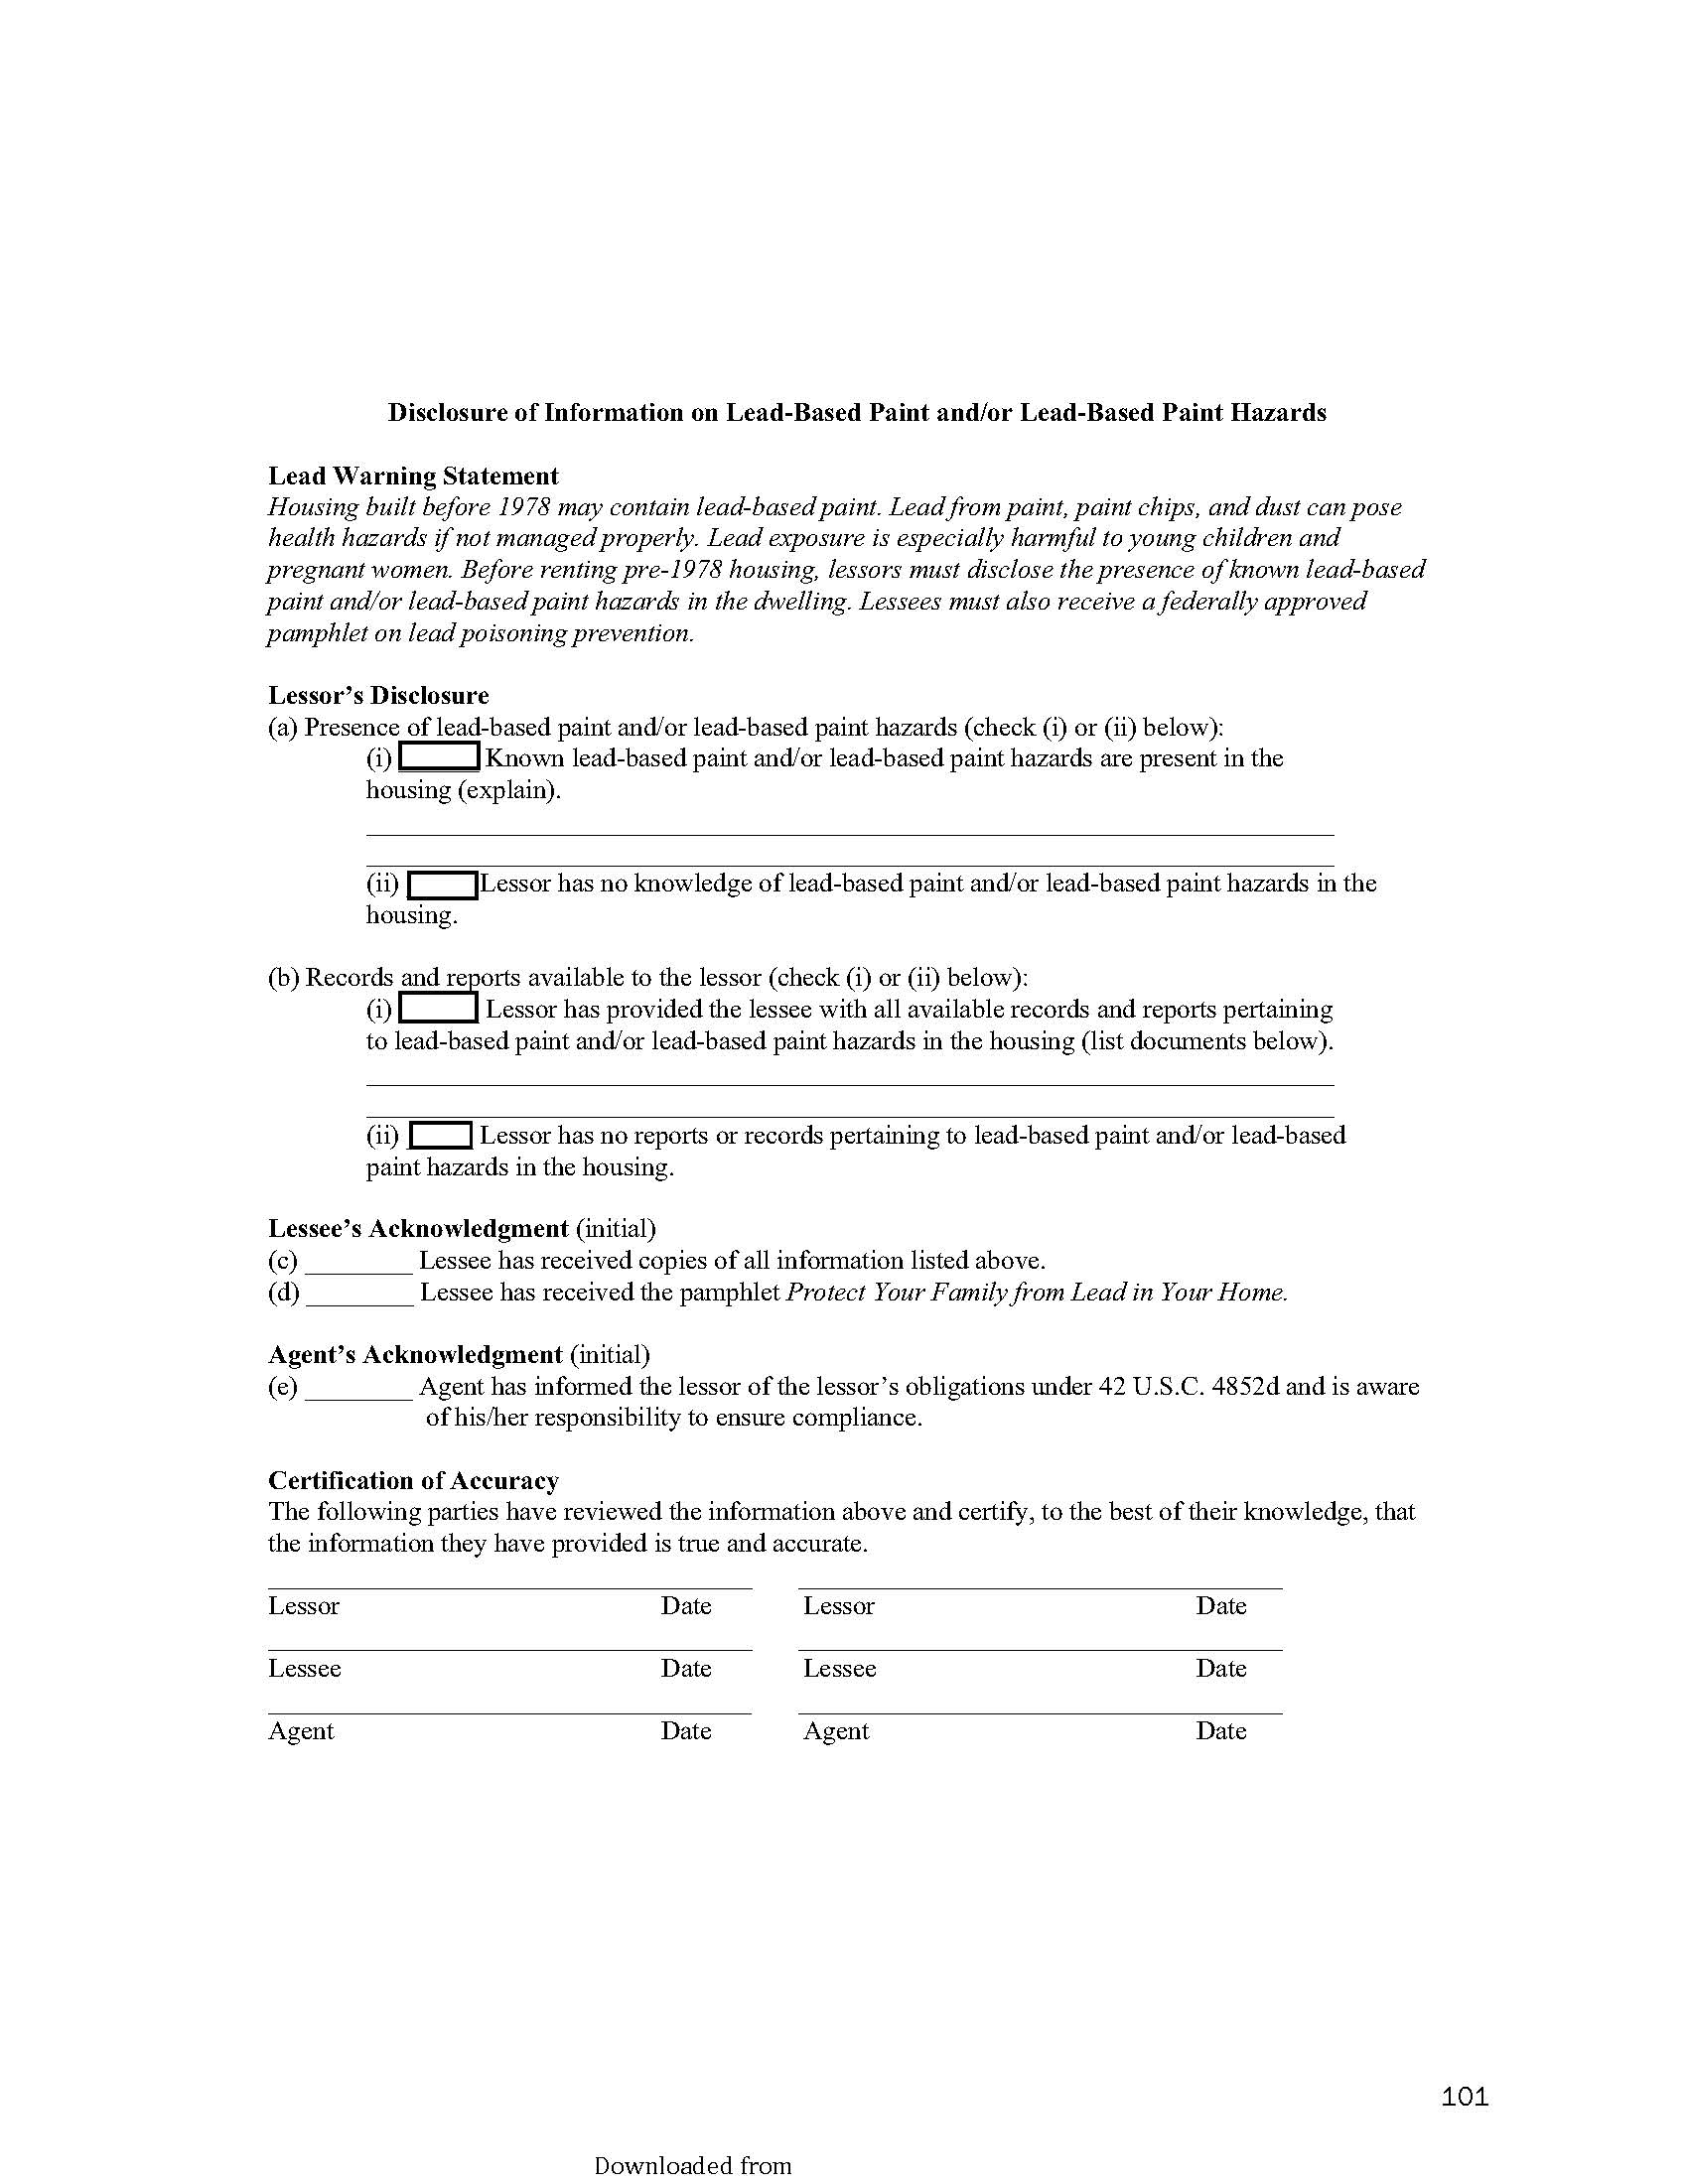 Lead Paint Disclosure Form Pdf